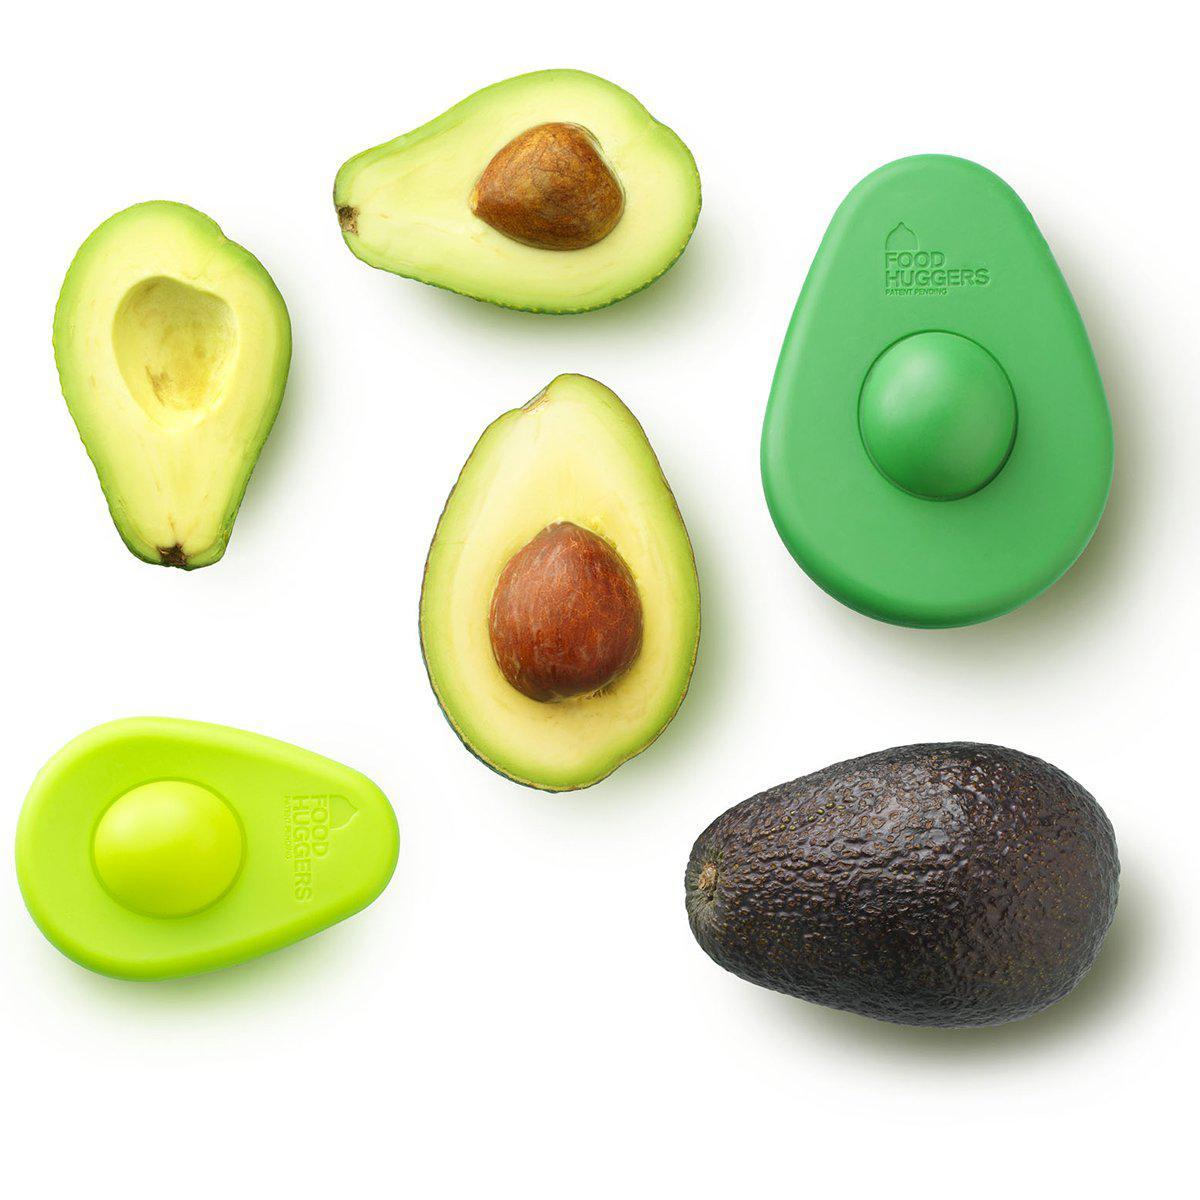 Food Huggers - Avocado Hugger - Set of 2